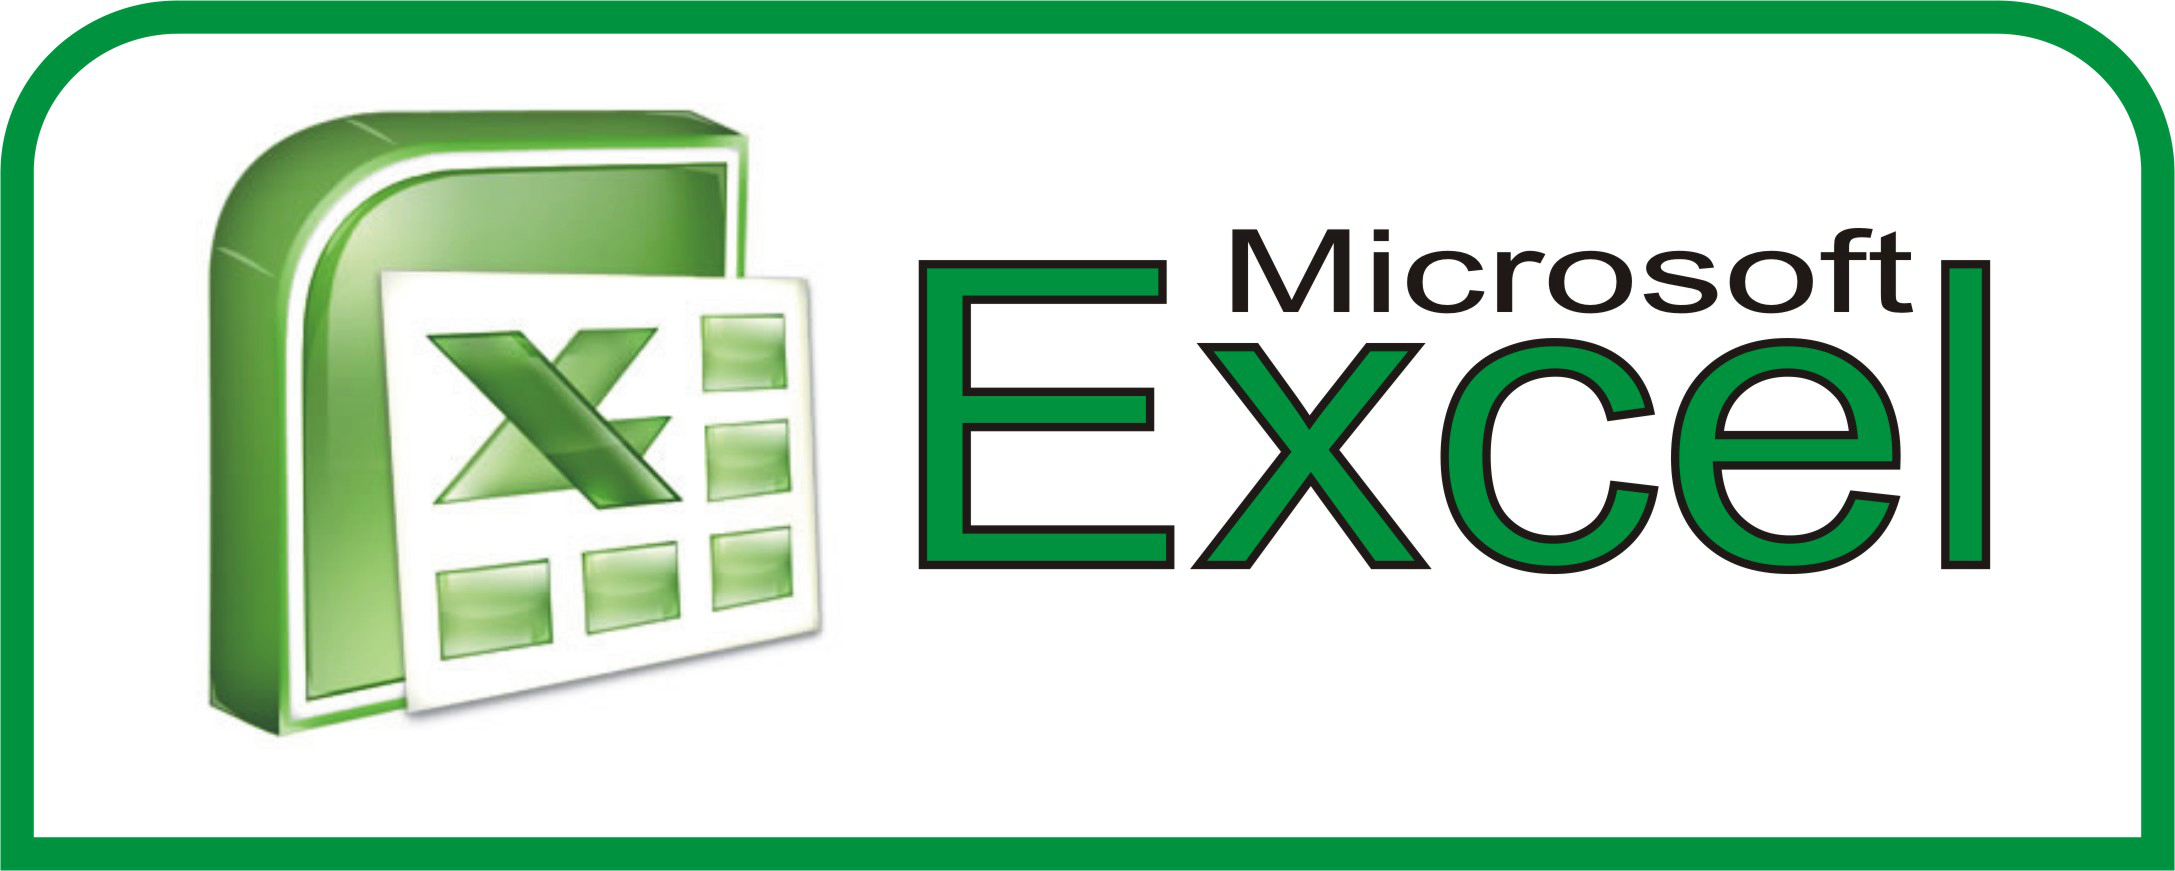 Ediblewildsus  Mesmerizing  Excel Shortcuts You Probably Didnt Know About  Techdissected With Fair Excel  If Besides Excel Check Spelling Furthermore How To Calculate Linear Regression In Excel With Nice Excel Files Corrupted Also How To Learn Excel For Free In Addition How To Do A Bar Chart In Excel And Excel Program Definition As Well As Excel Vba Font Additionally Microsoft Excel Spreadsheets From Techdissectedcom With Ediblewildsus  Fair  Excel Shortcuts You Probably Didnt Know About  Techdissected With Nice Excel  If Besides Excel Check Spelling Furthermore How To Calculate Linear Regression In Excel And Mesmerizing Excel Files Corrupted Also How To Learn Excel For Free In Addition How To Do A Bar Chart In Excel From Techdissectedcom